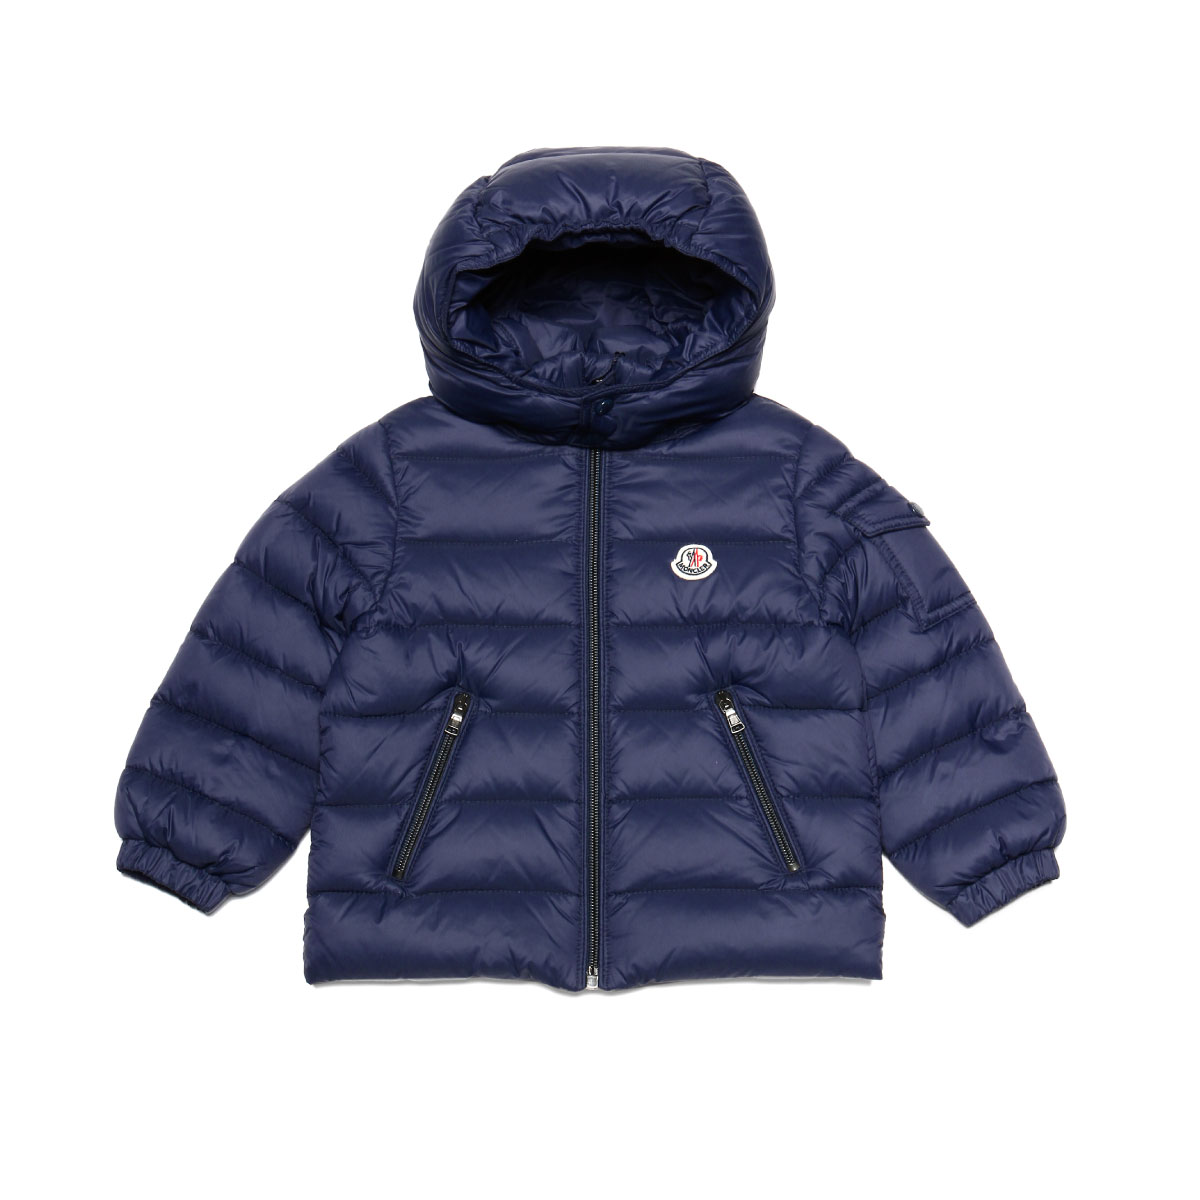 37ff9b9aff67 importshopdouble  Down jacket JULES Jules NAVY dark blue 9M-3A with ...